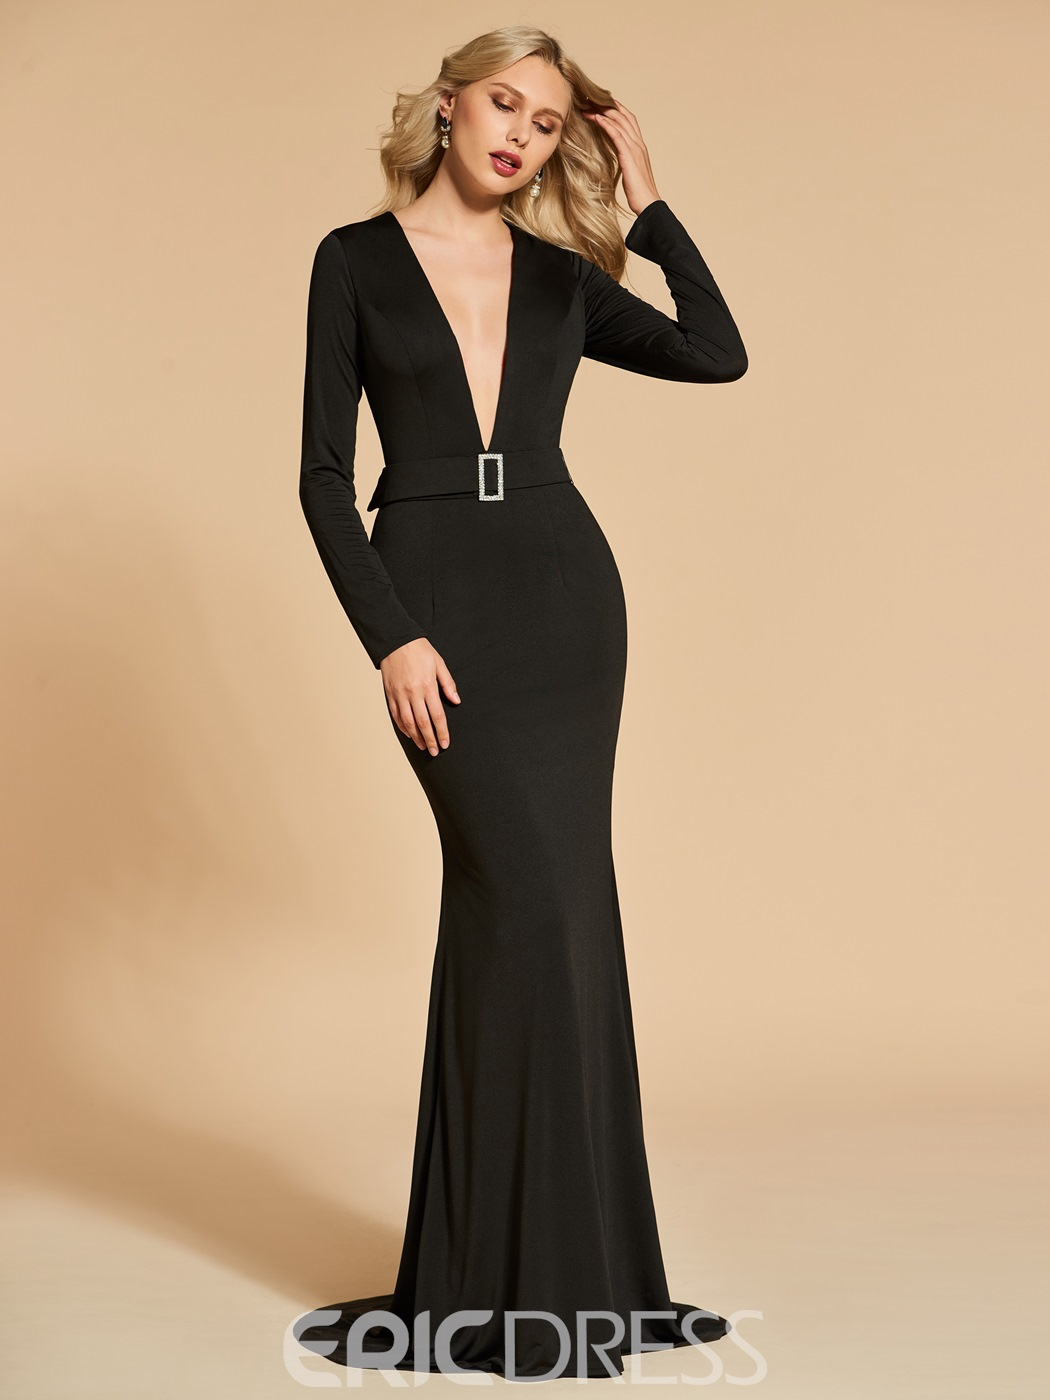 Ericdress Long Sleeve Deep V Neck Black Mermaid Evening Dress ...